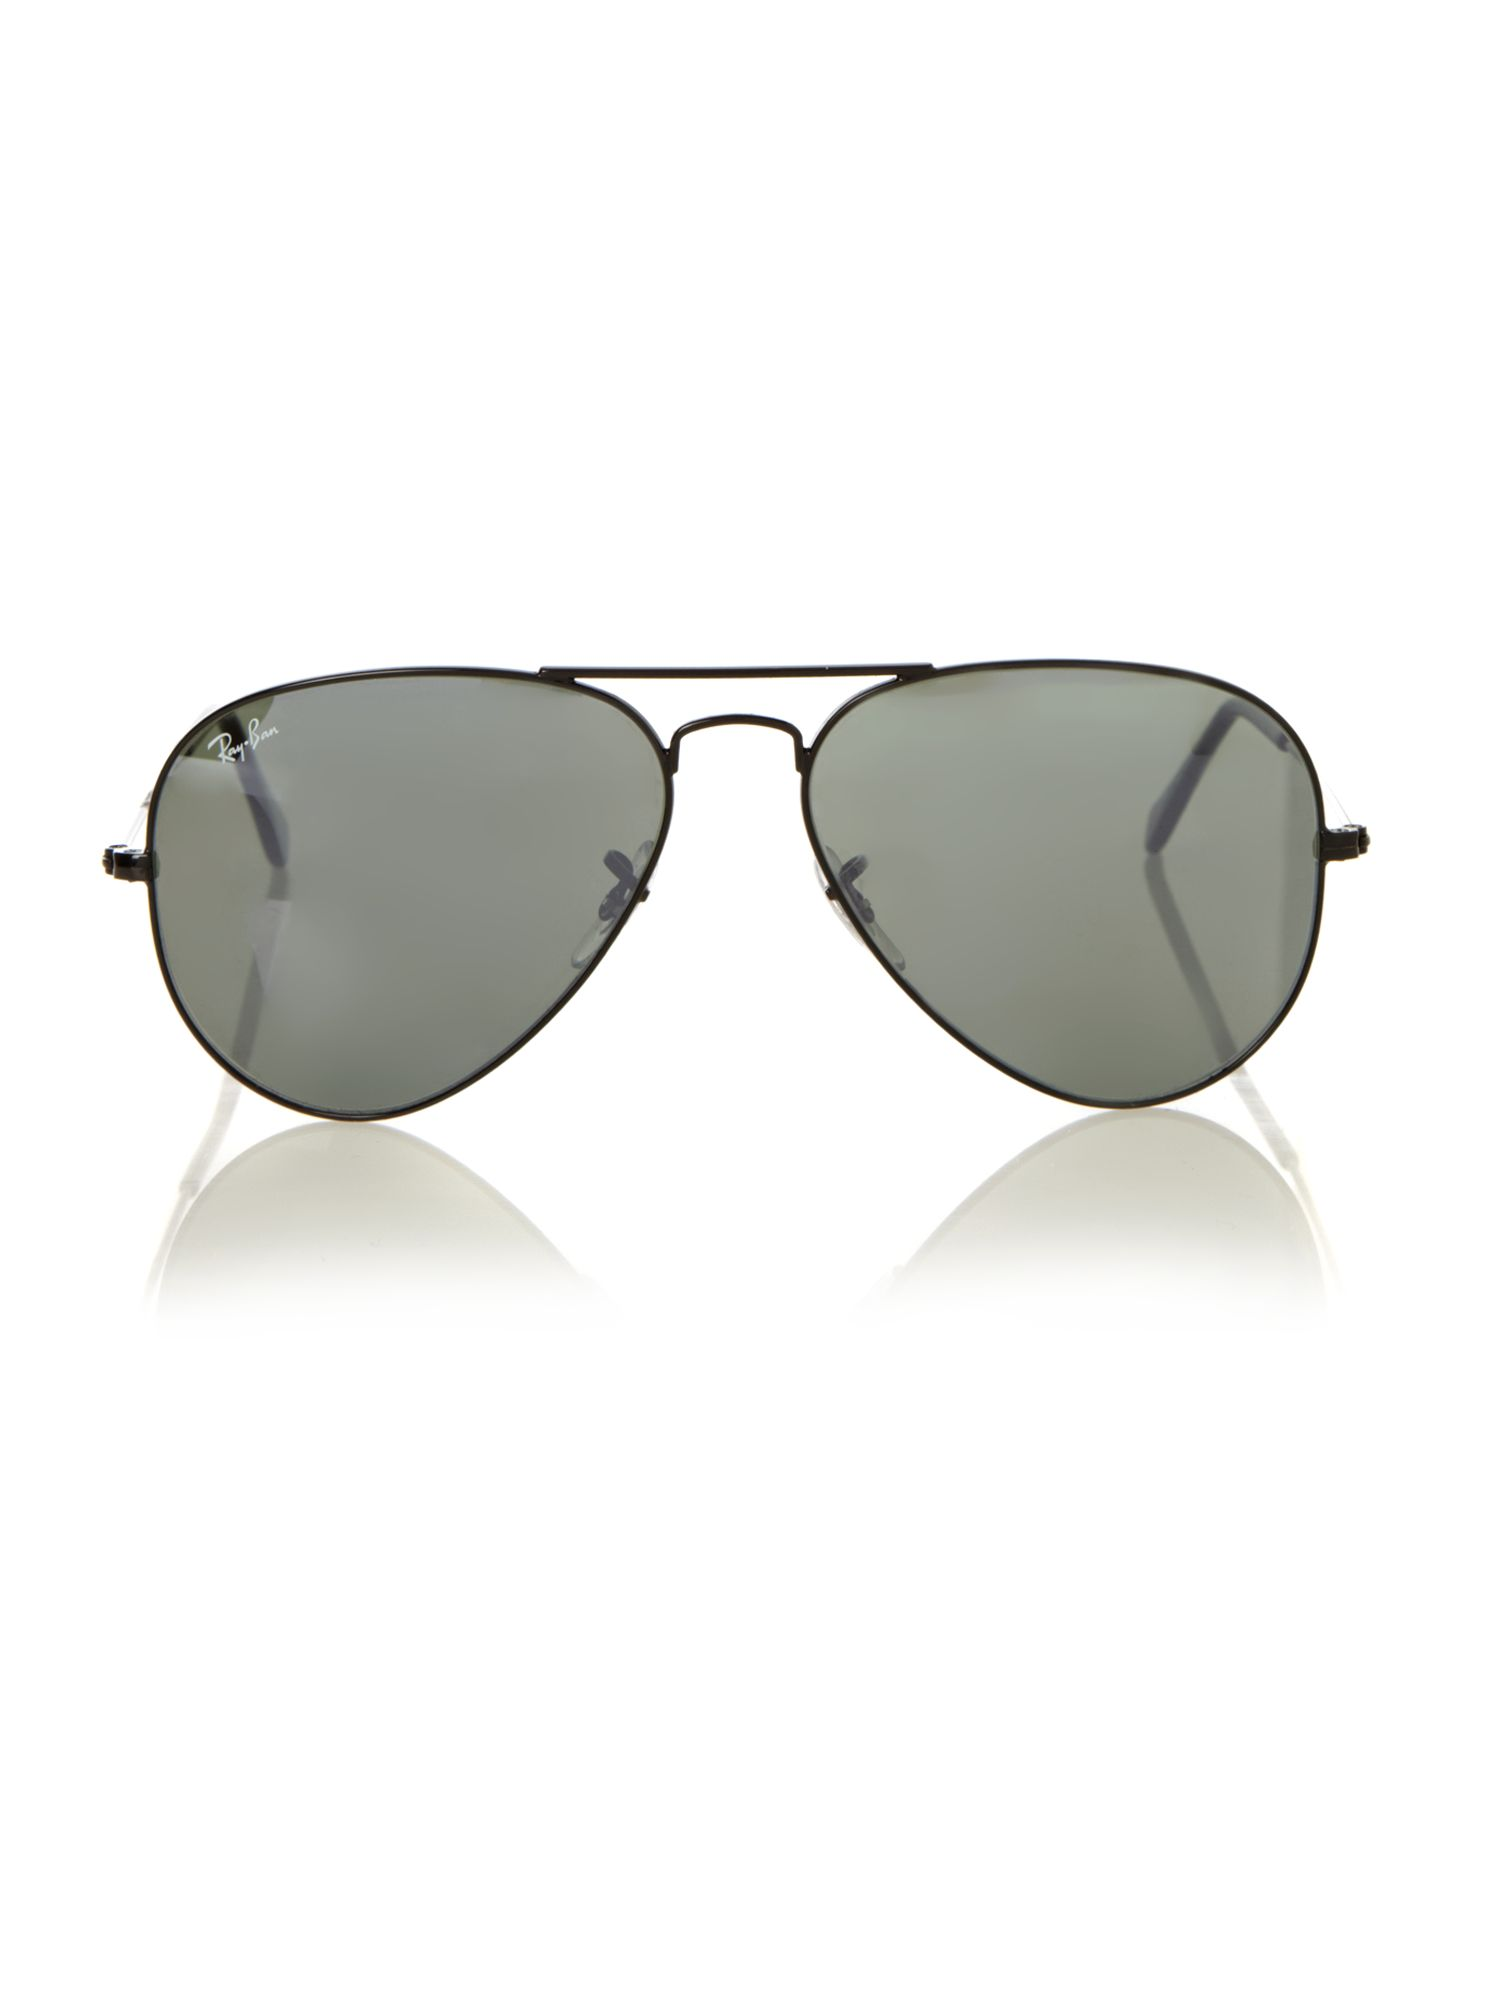 Unisex RB3025 003/59 L. Polar Aviator Sunglasses